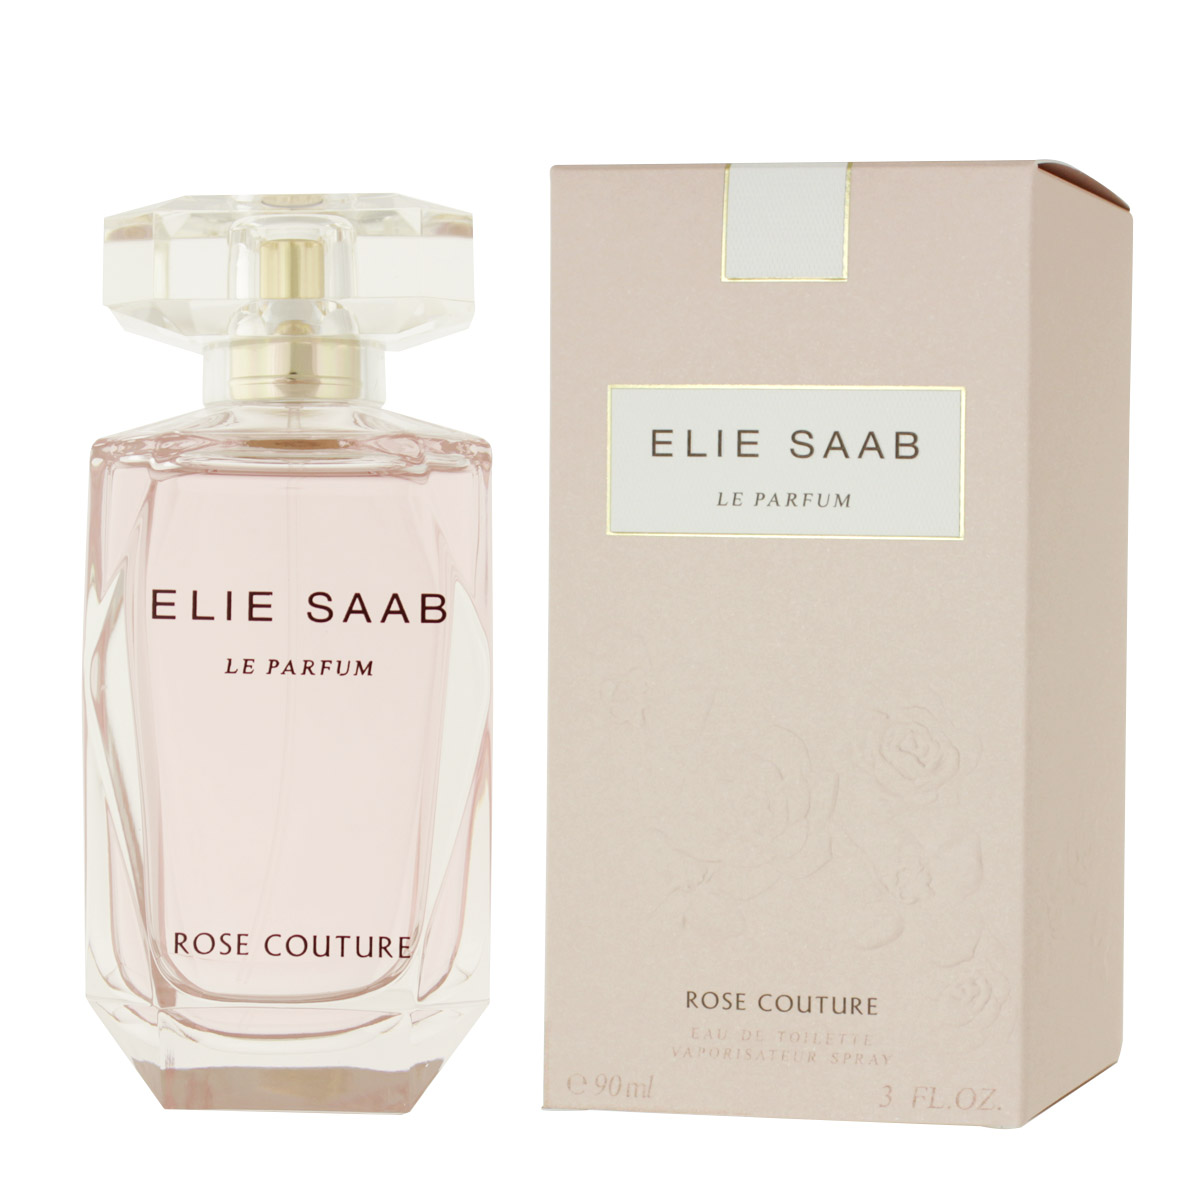 Elie Saab Le Parfum Rose Couture Eau De Toilette 90 ml (woman) 83331